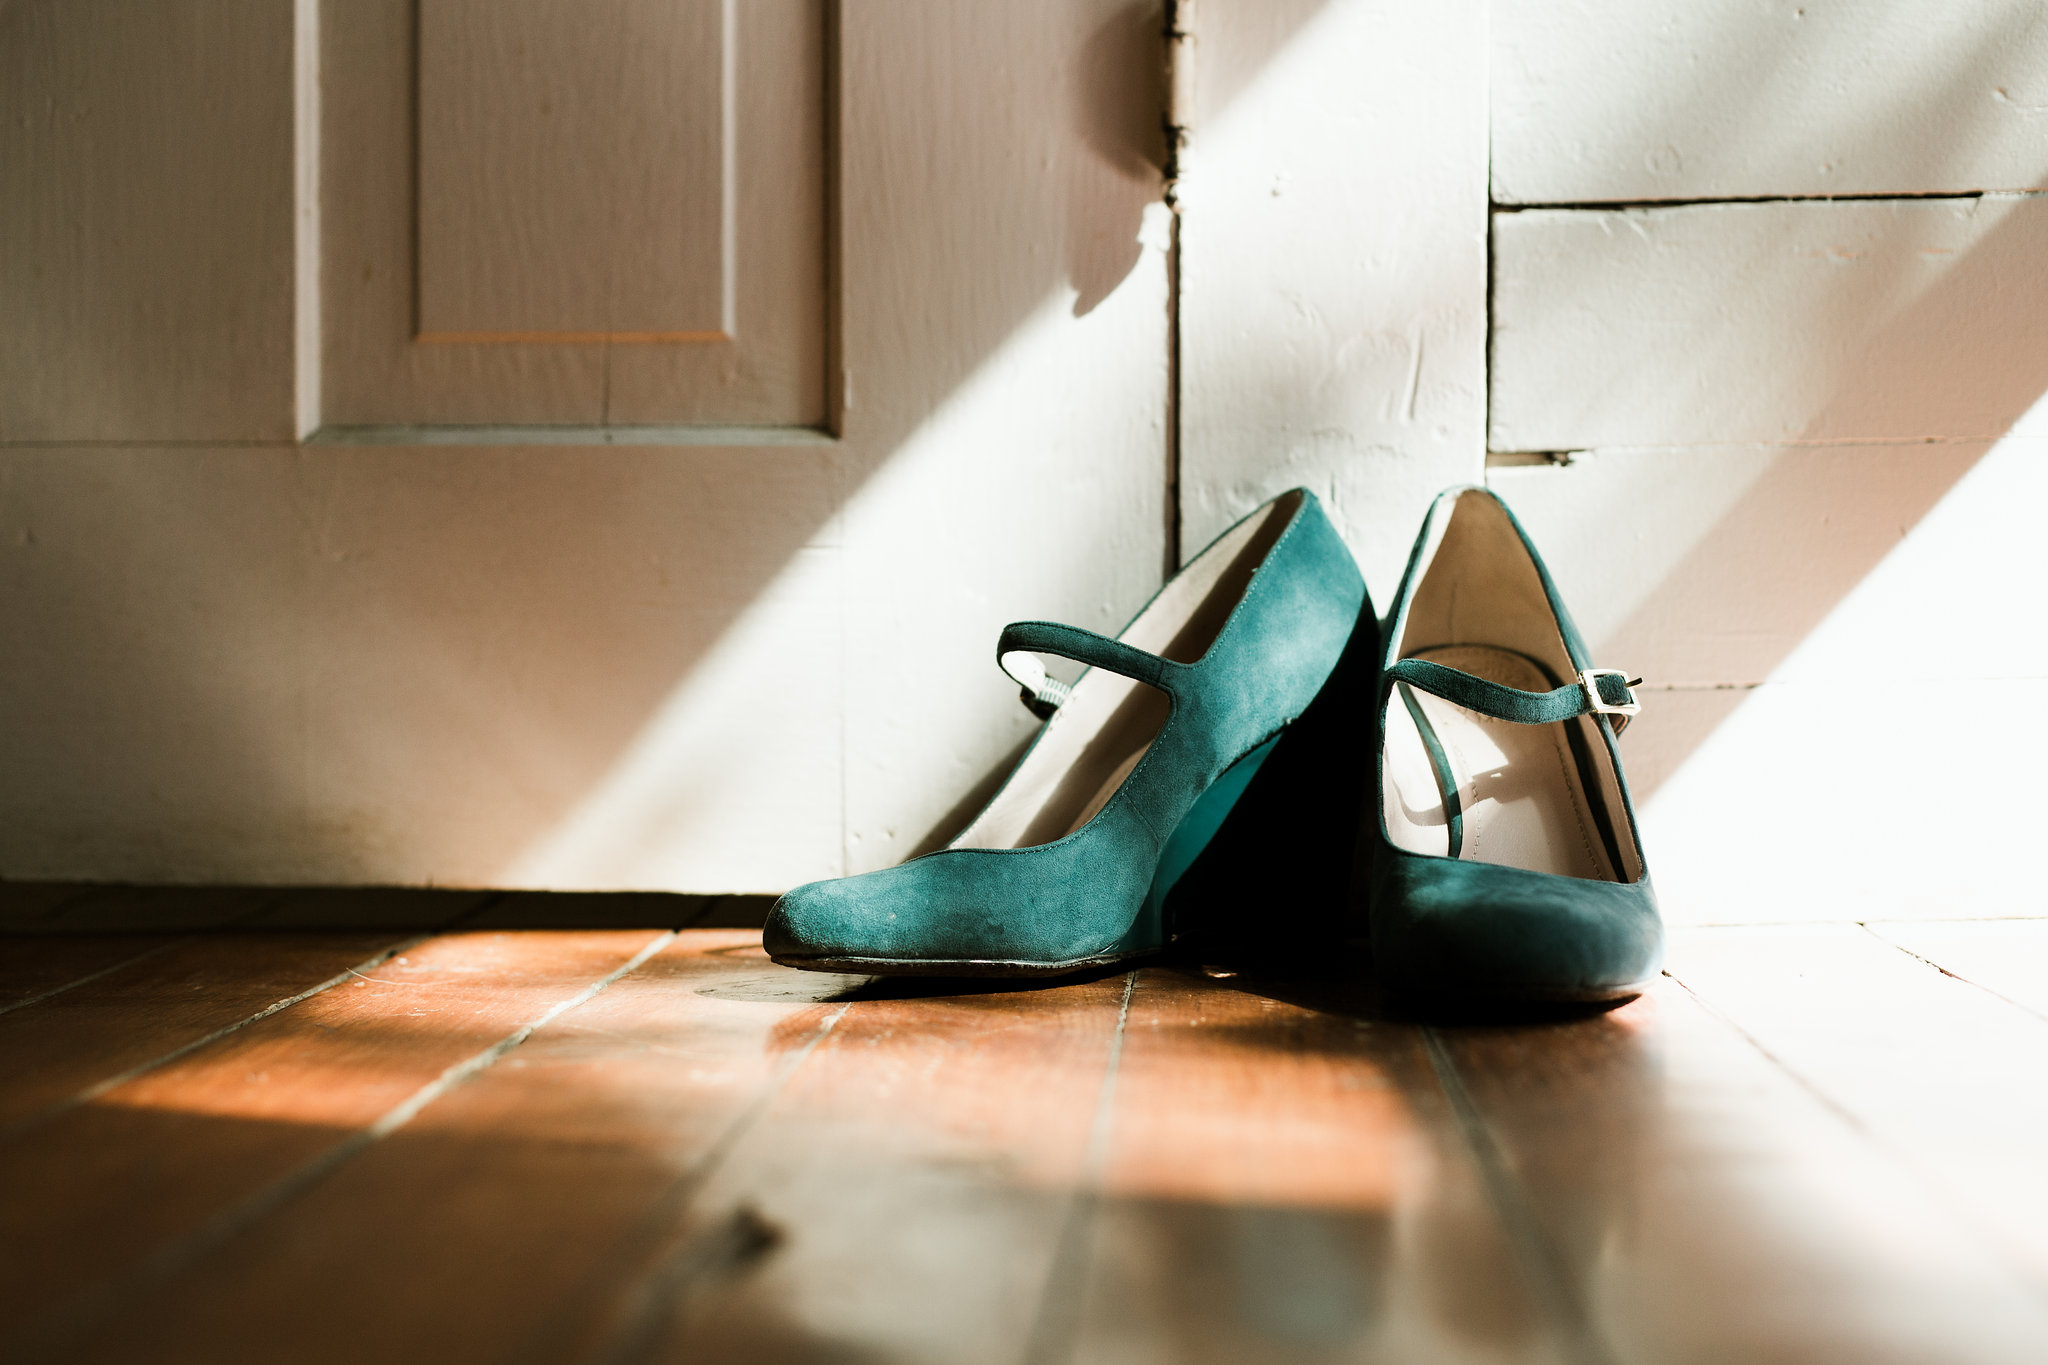 Suede teal wedding shoes